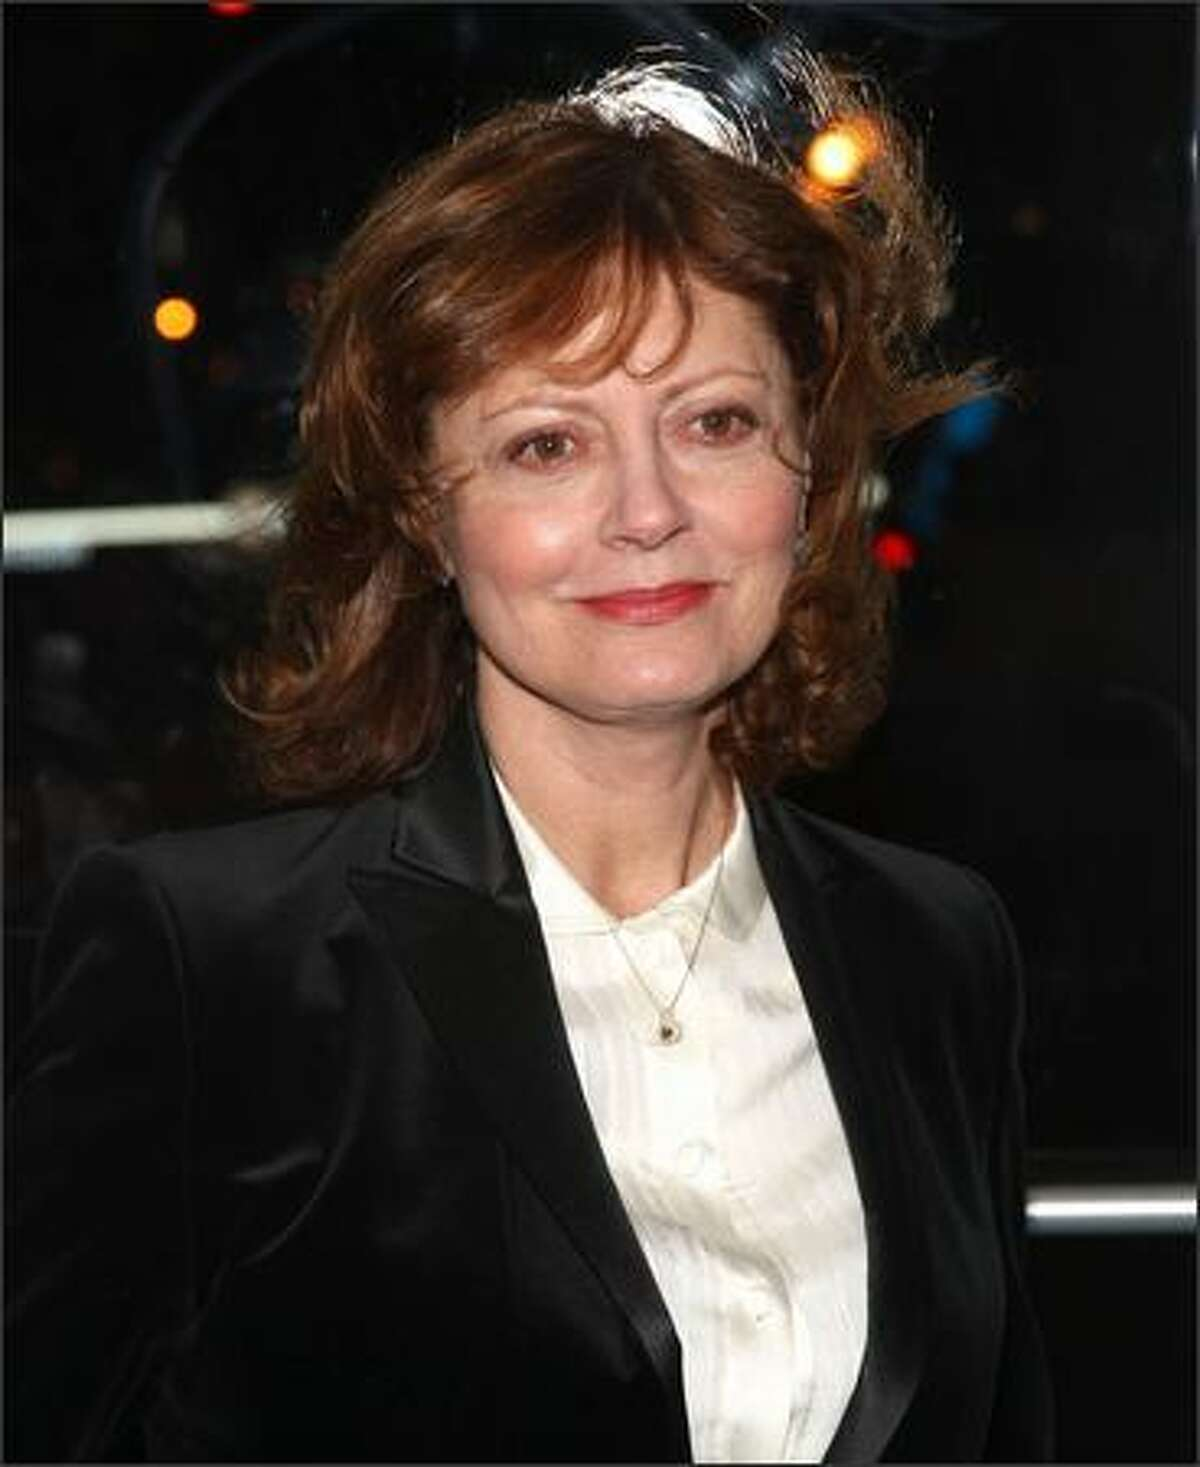 Actress Susan Sarandon attends the Creative Coalition's 2009 Inaugural Ball at the Harman Center for the Arts on Tuesday in Washington, DC.